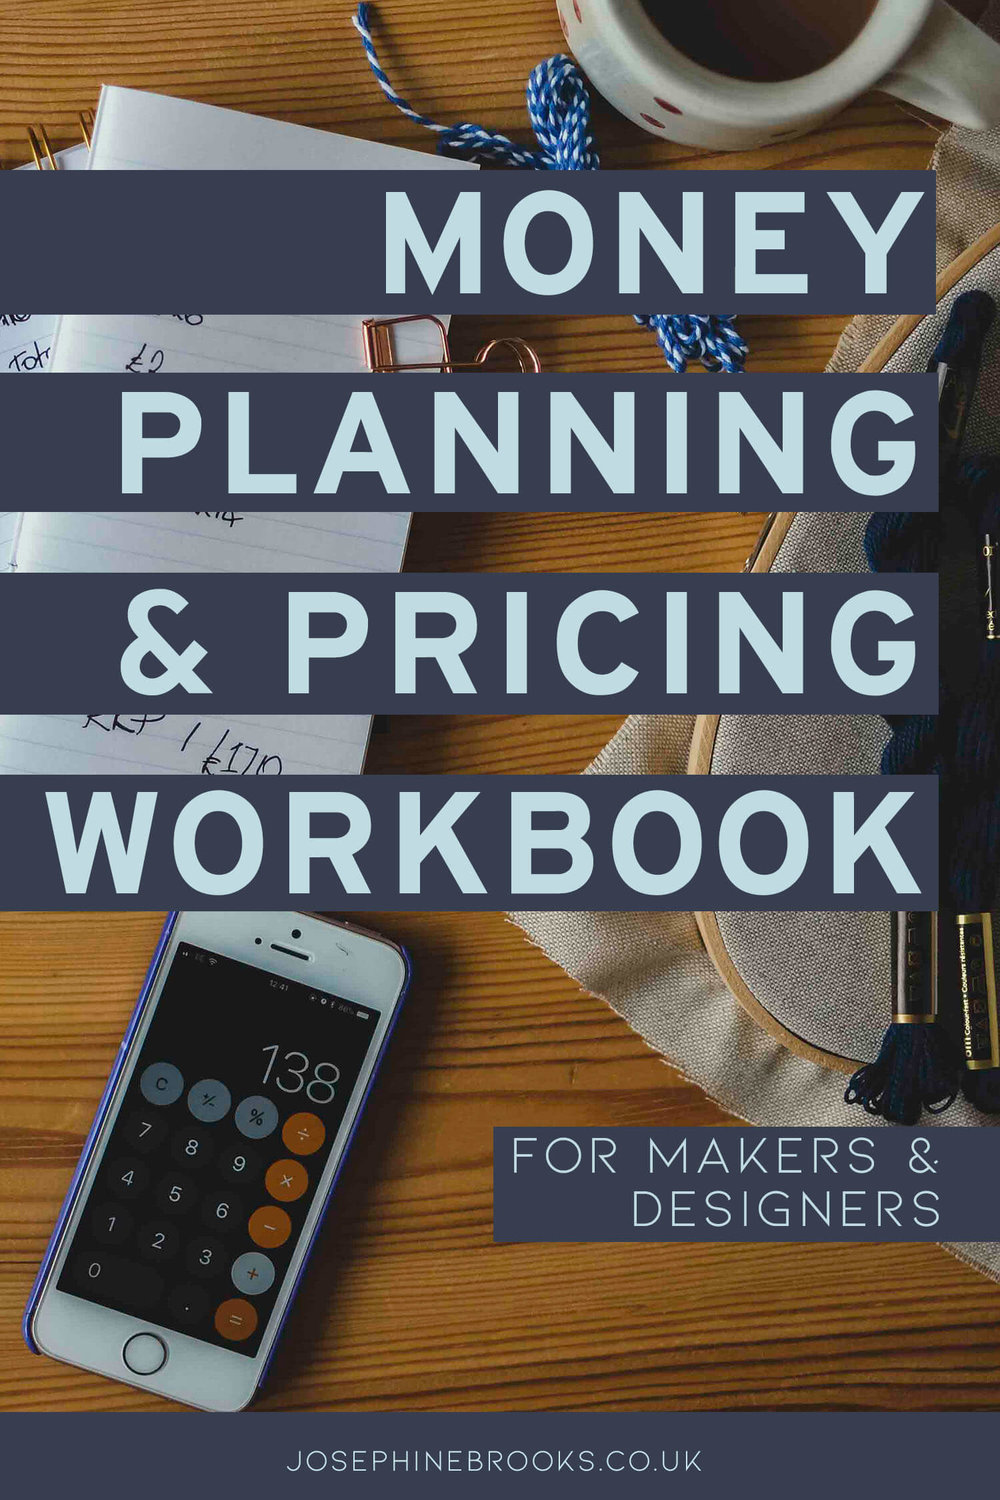 Money & Pricing Workbook for Makers & Designers | Setting prices for handmade products | Setting income goals for creative business | How to set your prices | Pricing formulas for creative business | Product pricing guide